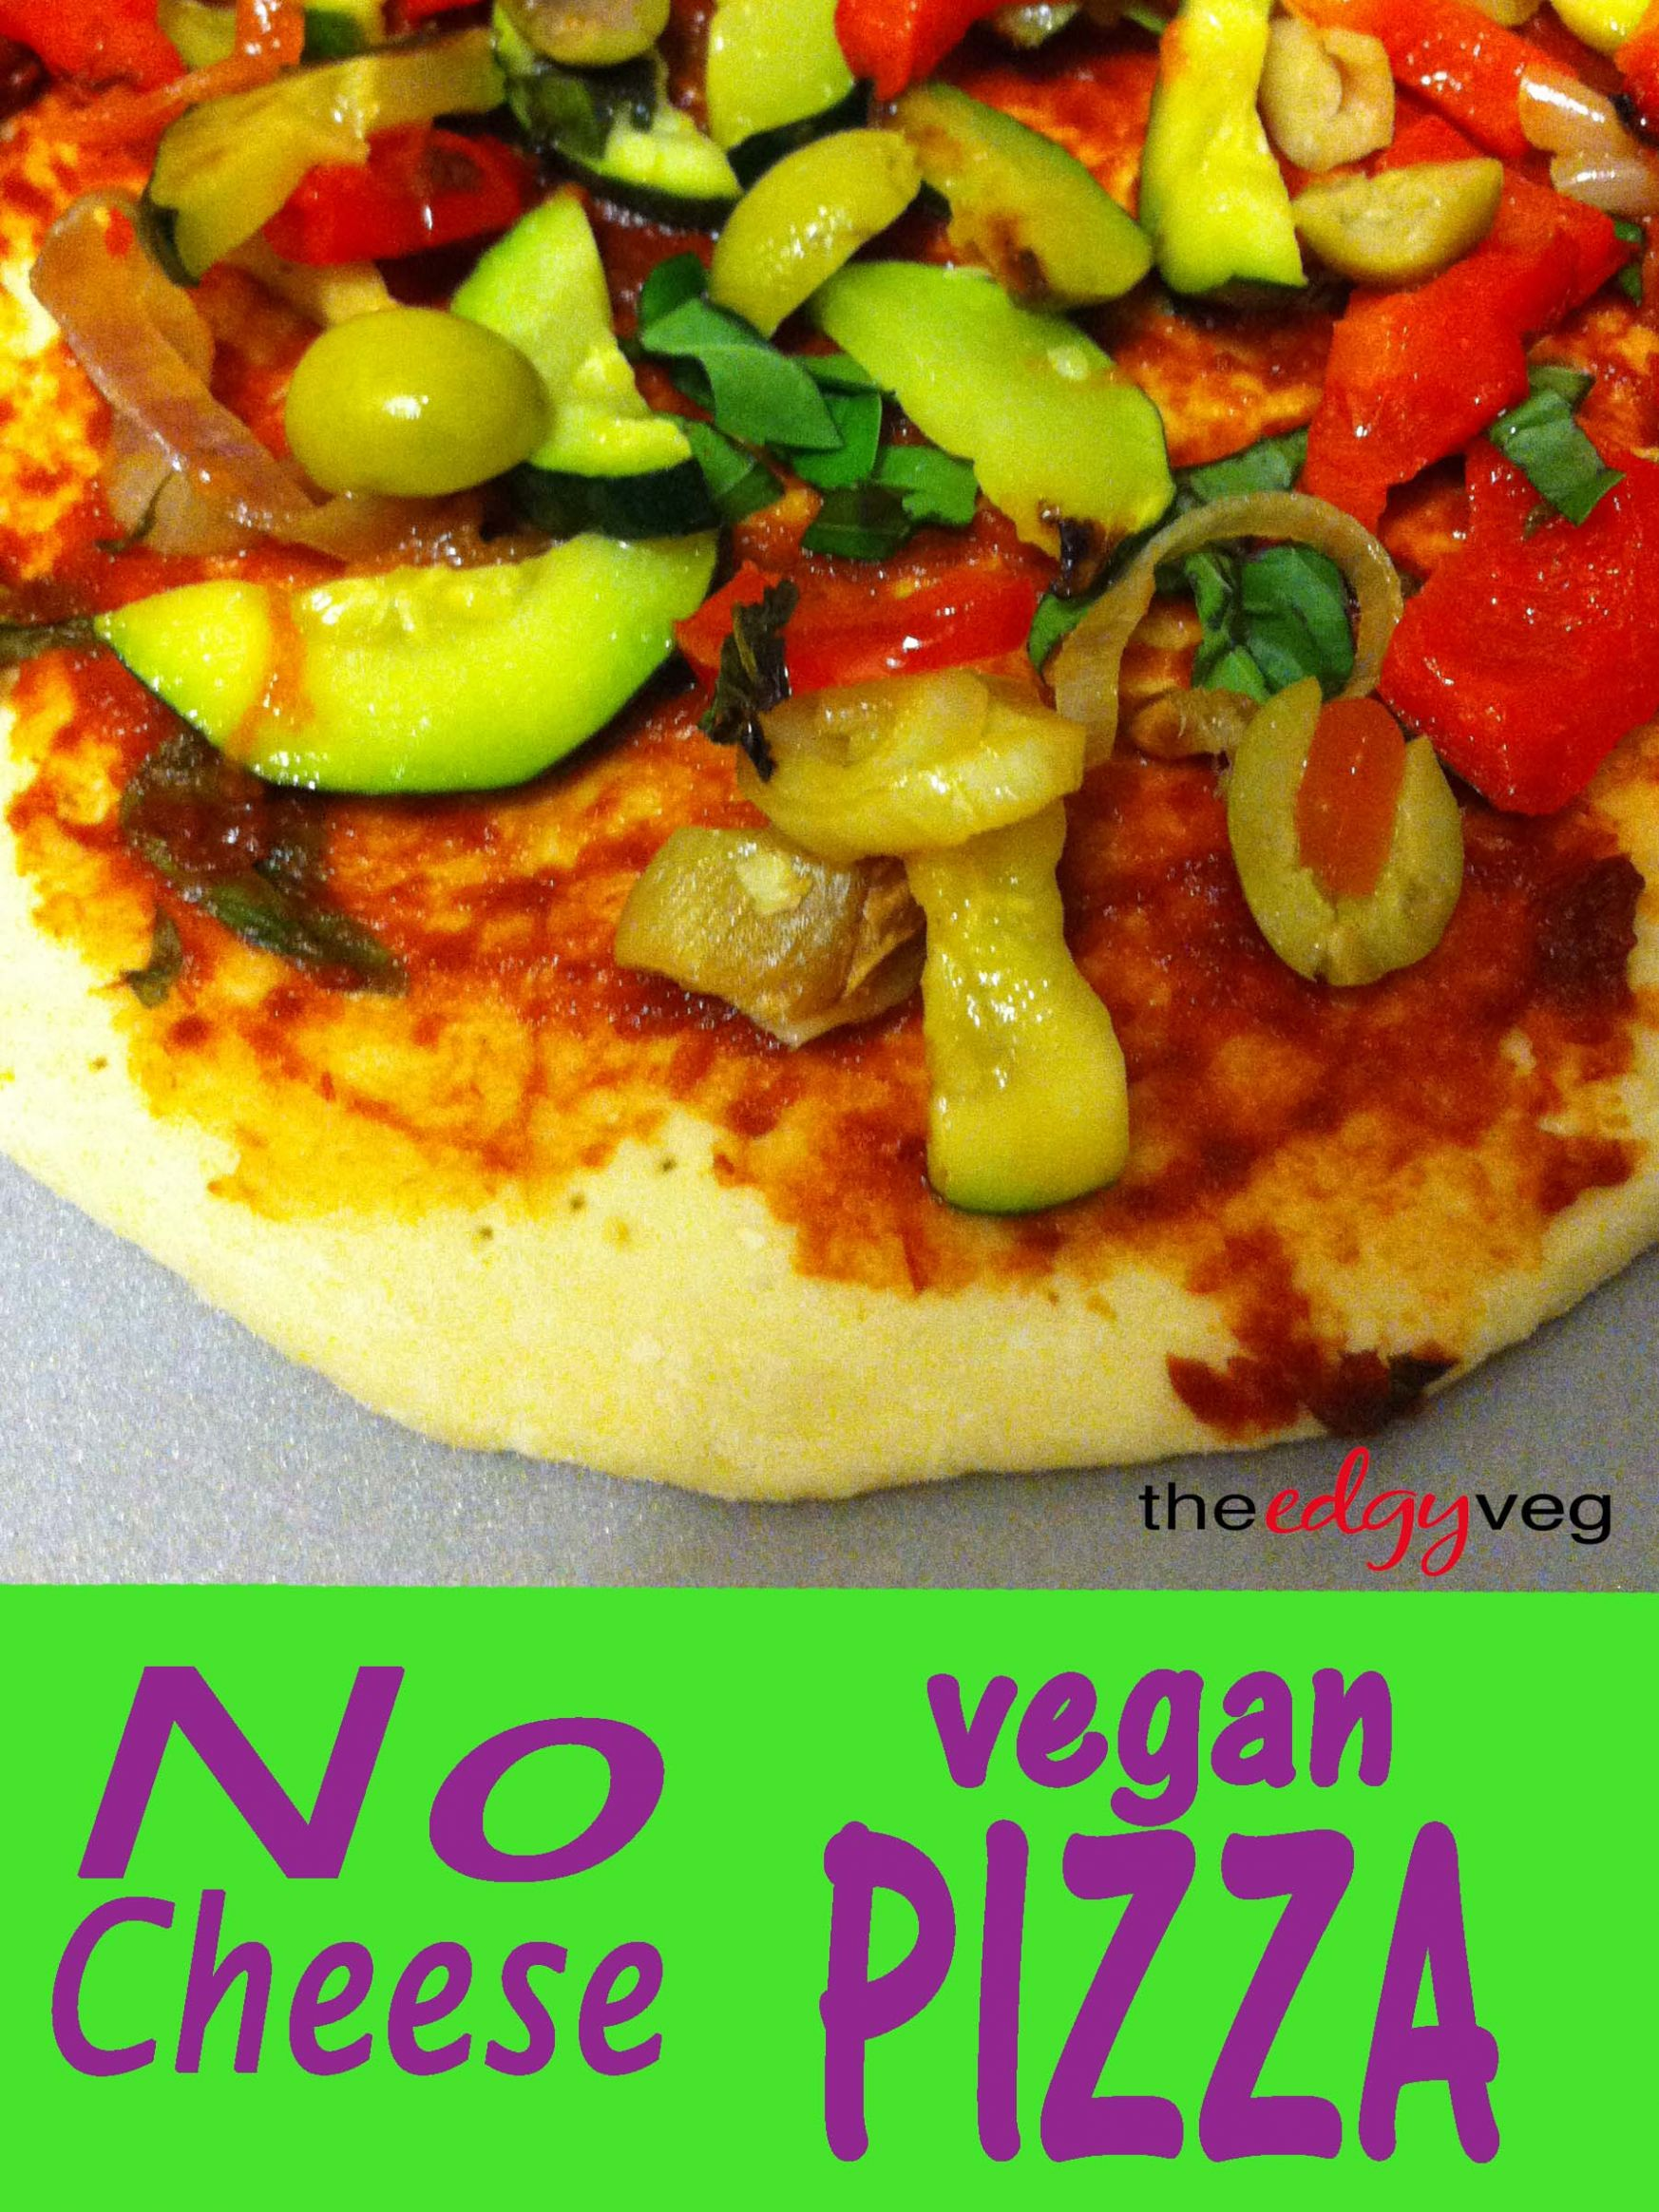 No Cheese Vegan Pizza - Pizza Recipes Without Cheese